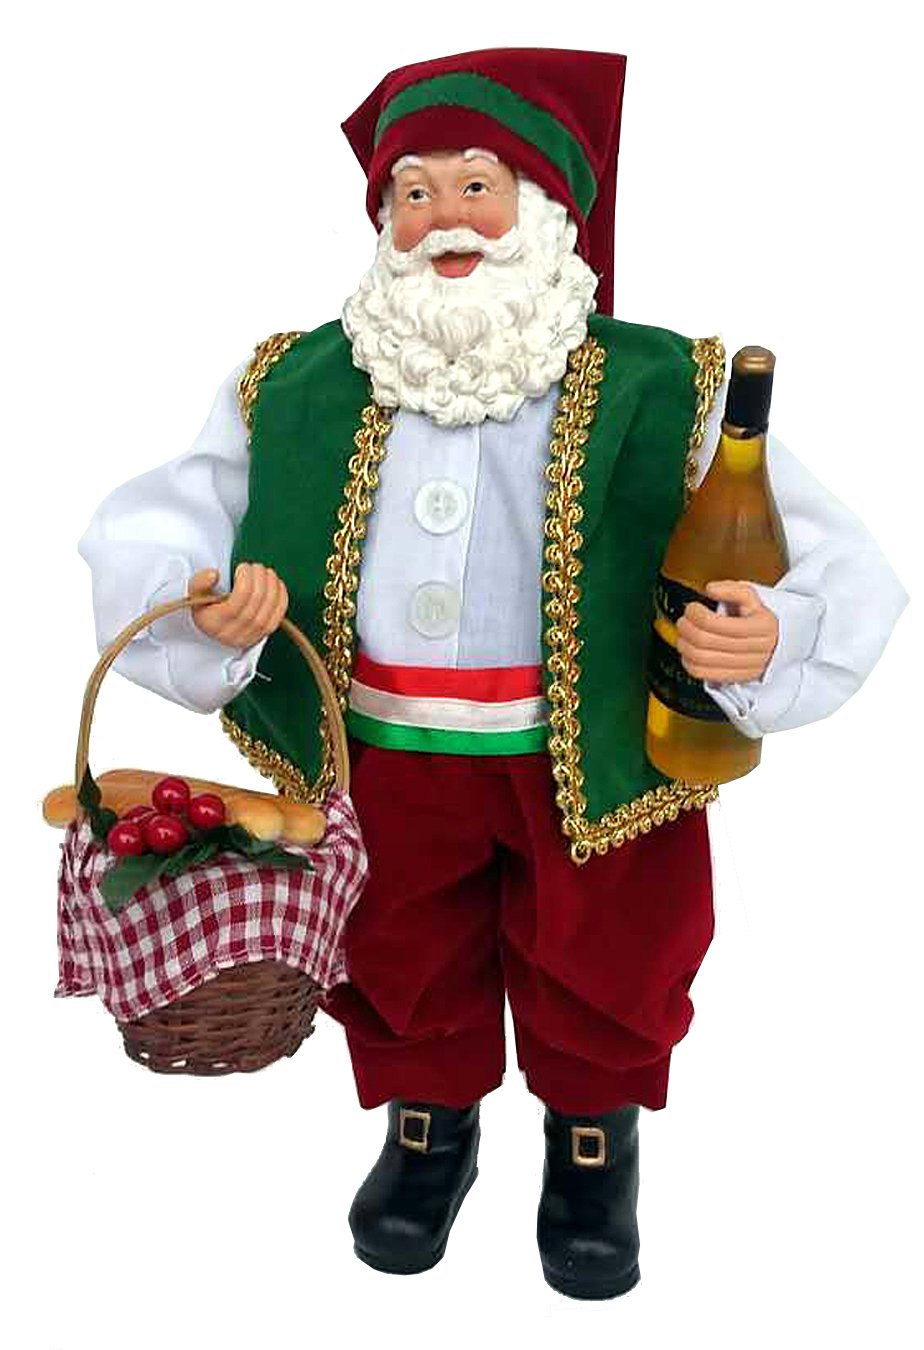 Santa's Workshop 5625 Italian Santa Figurine, 12'', Multicolored